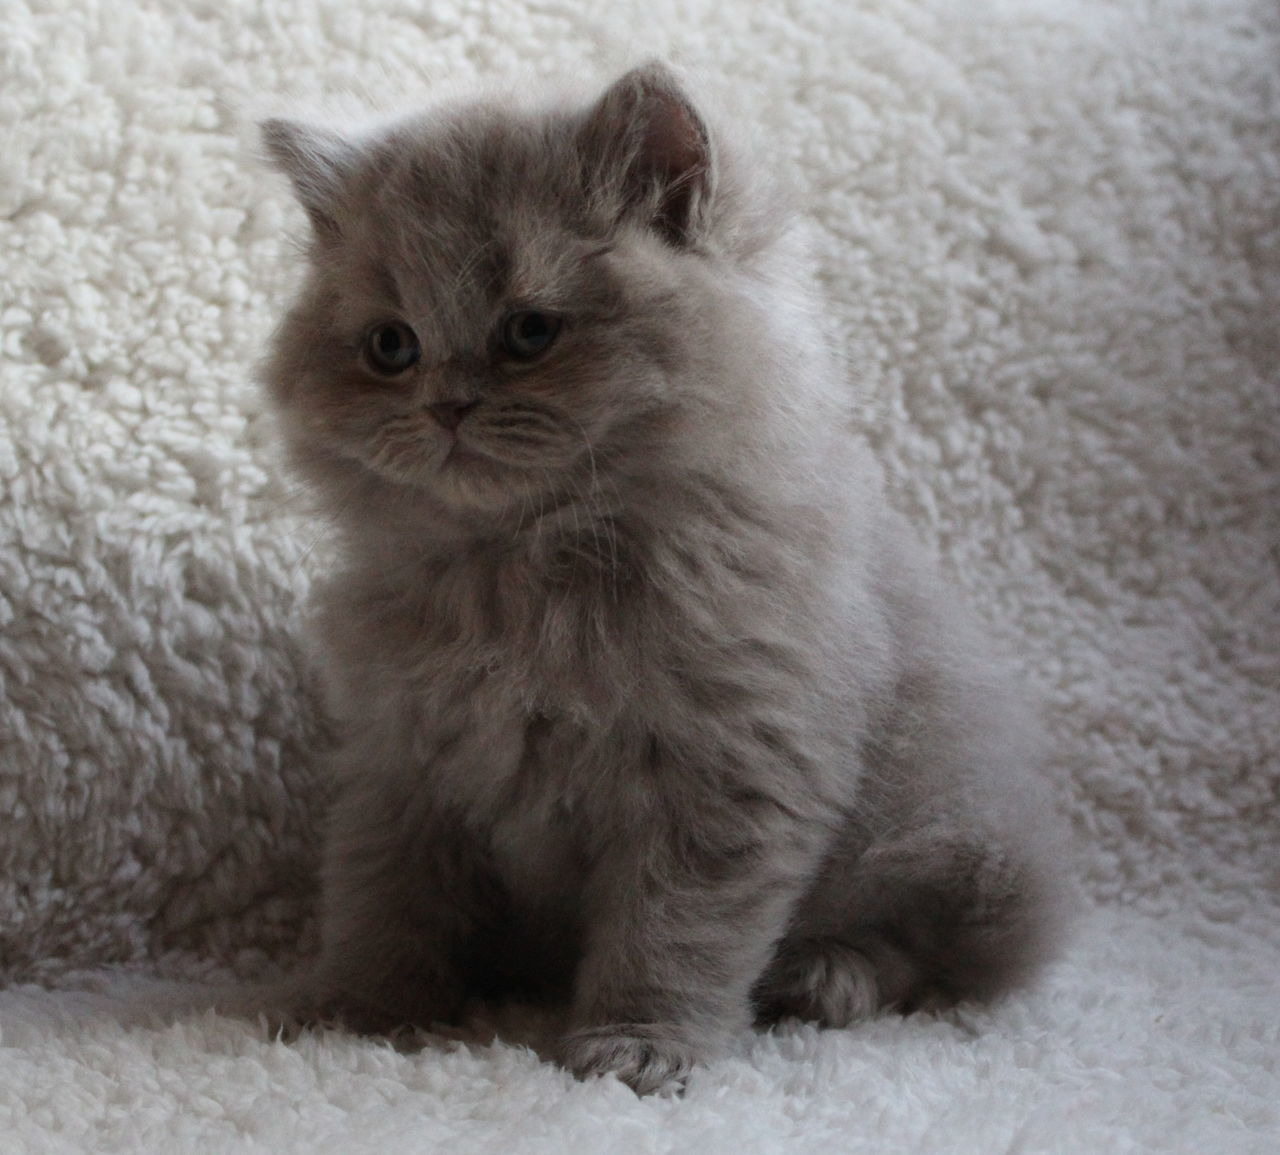 domestic cat, one animal, pets, animal themes, mammal, domestic animals, indoors, feline, no people, animal hair, rug, whisker, home interior, persian cat, sitting, close-up, day